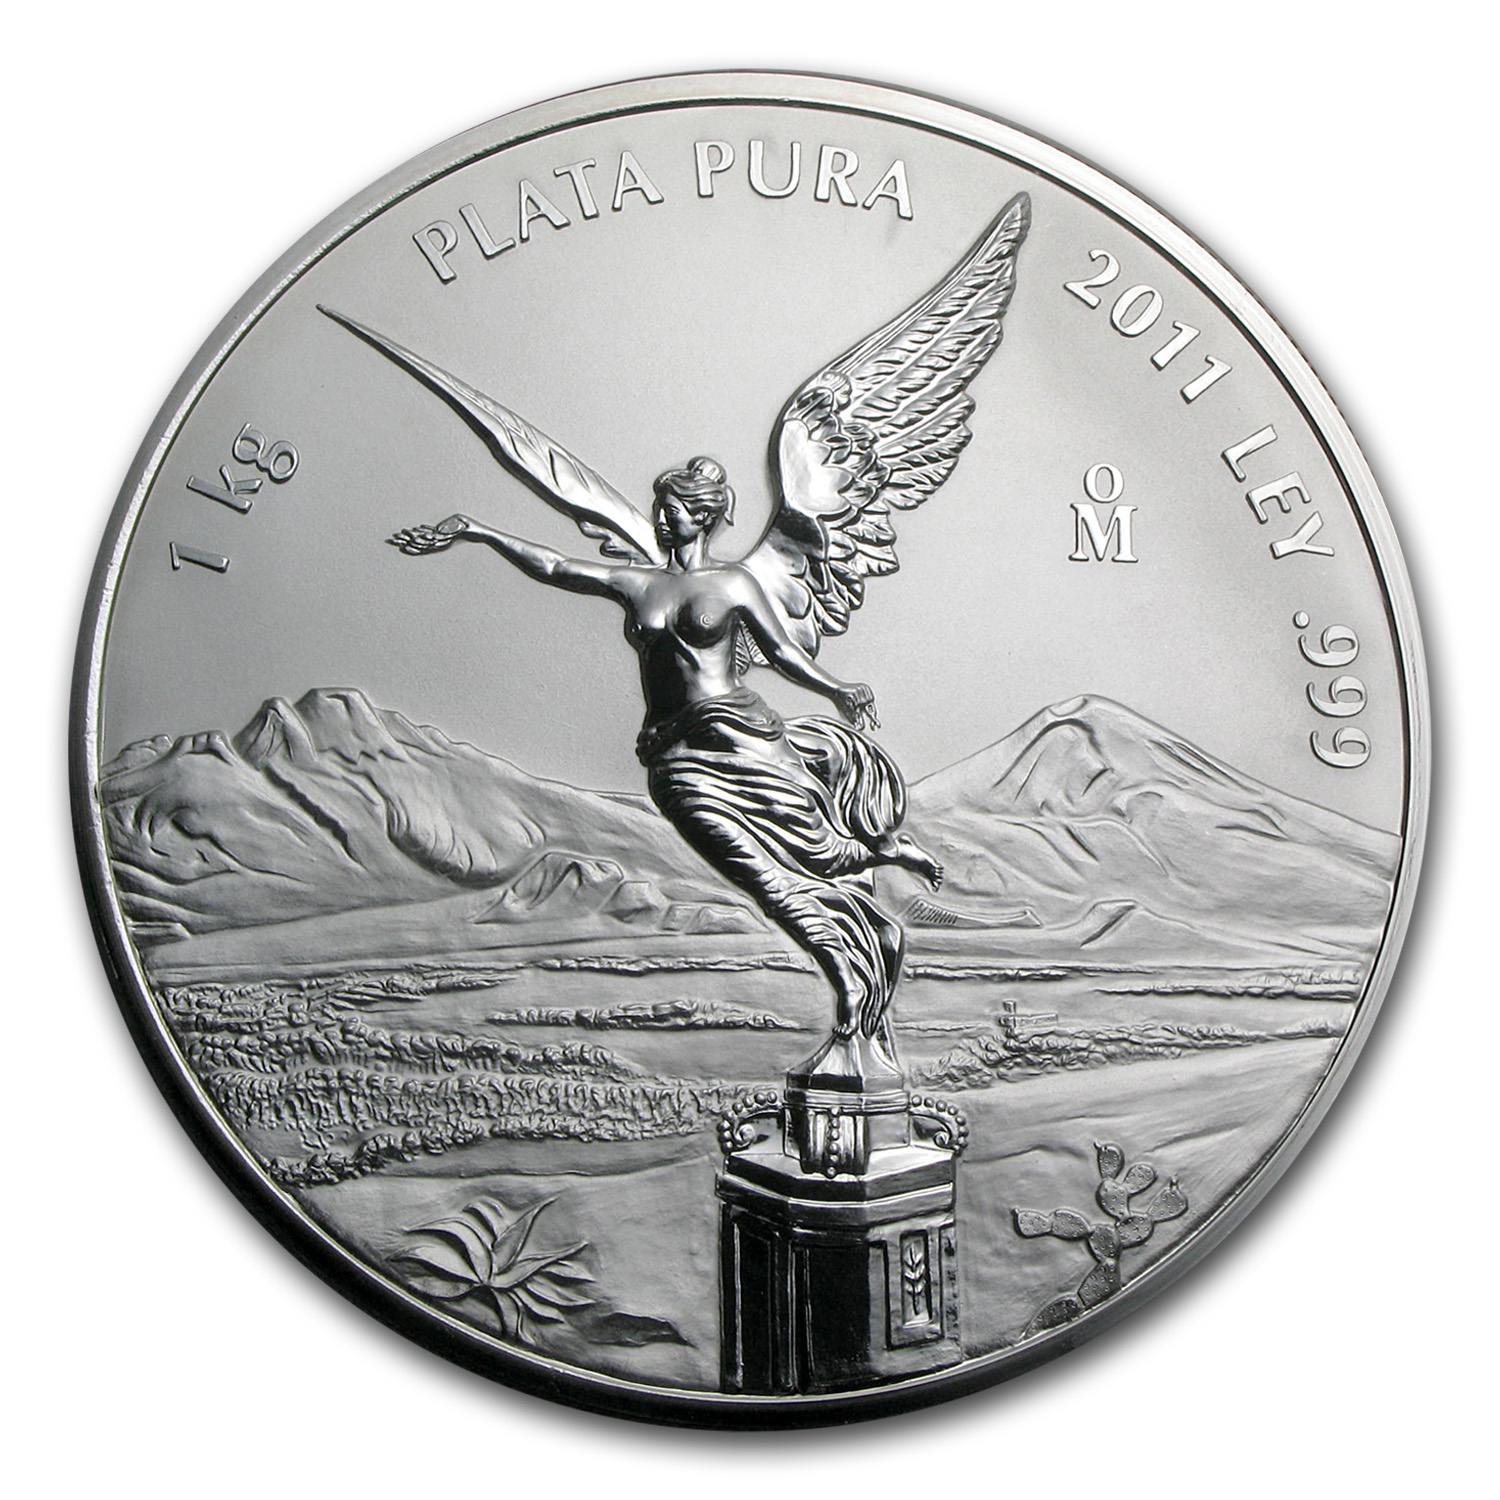 2011 1 kilo Silver Libertad Proof Like (w/Box & COA)